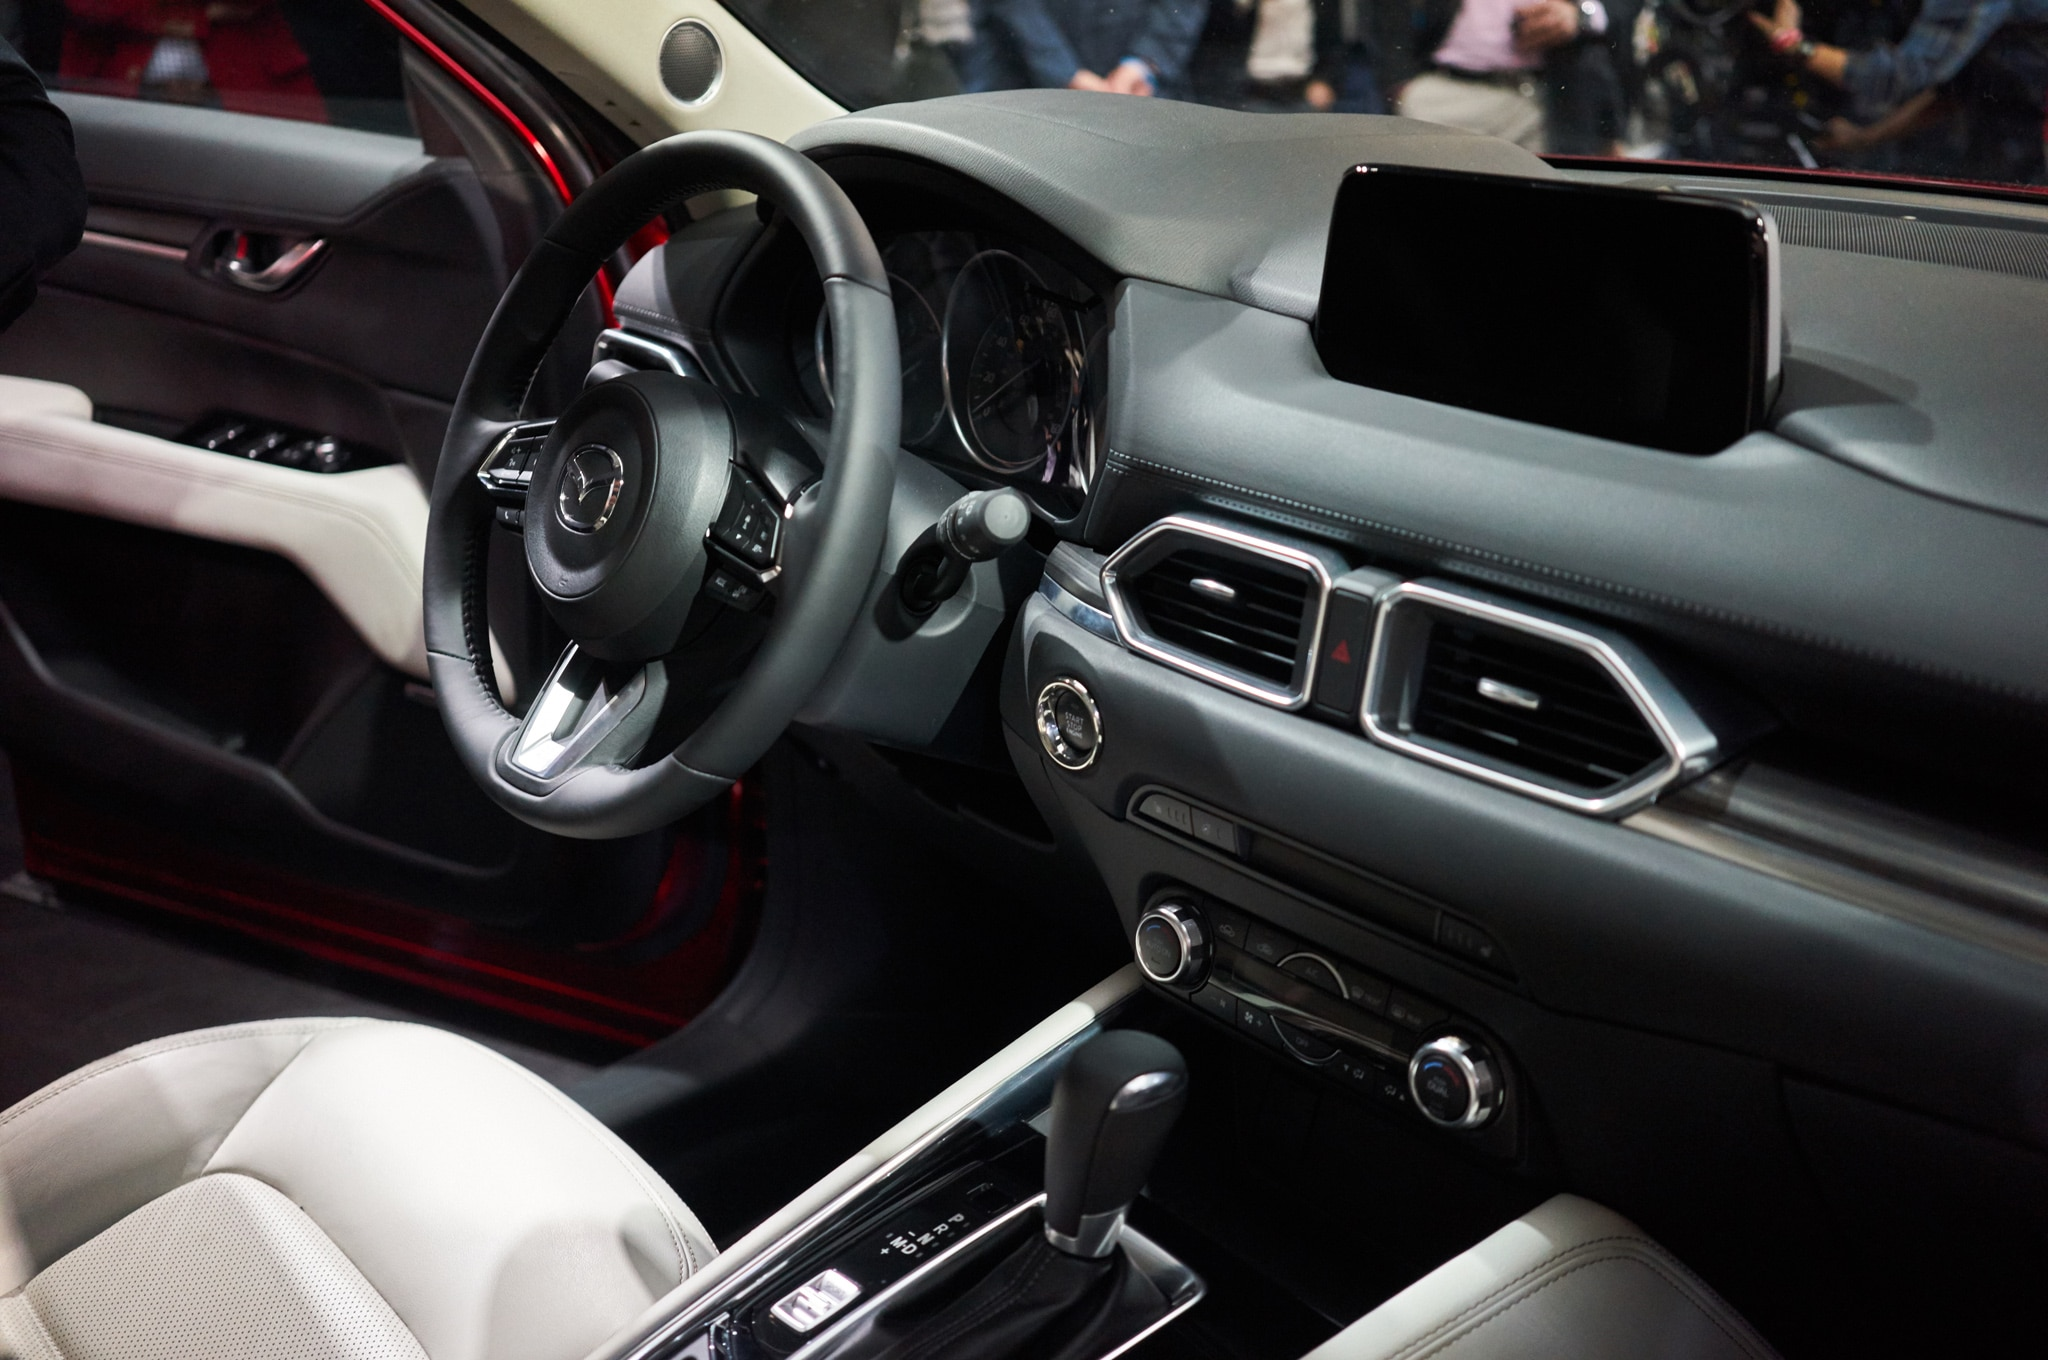 2017 Mazda CX 5 interior from passenger seat